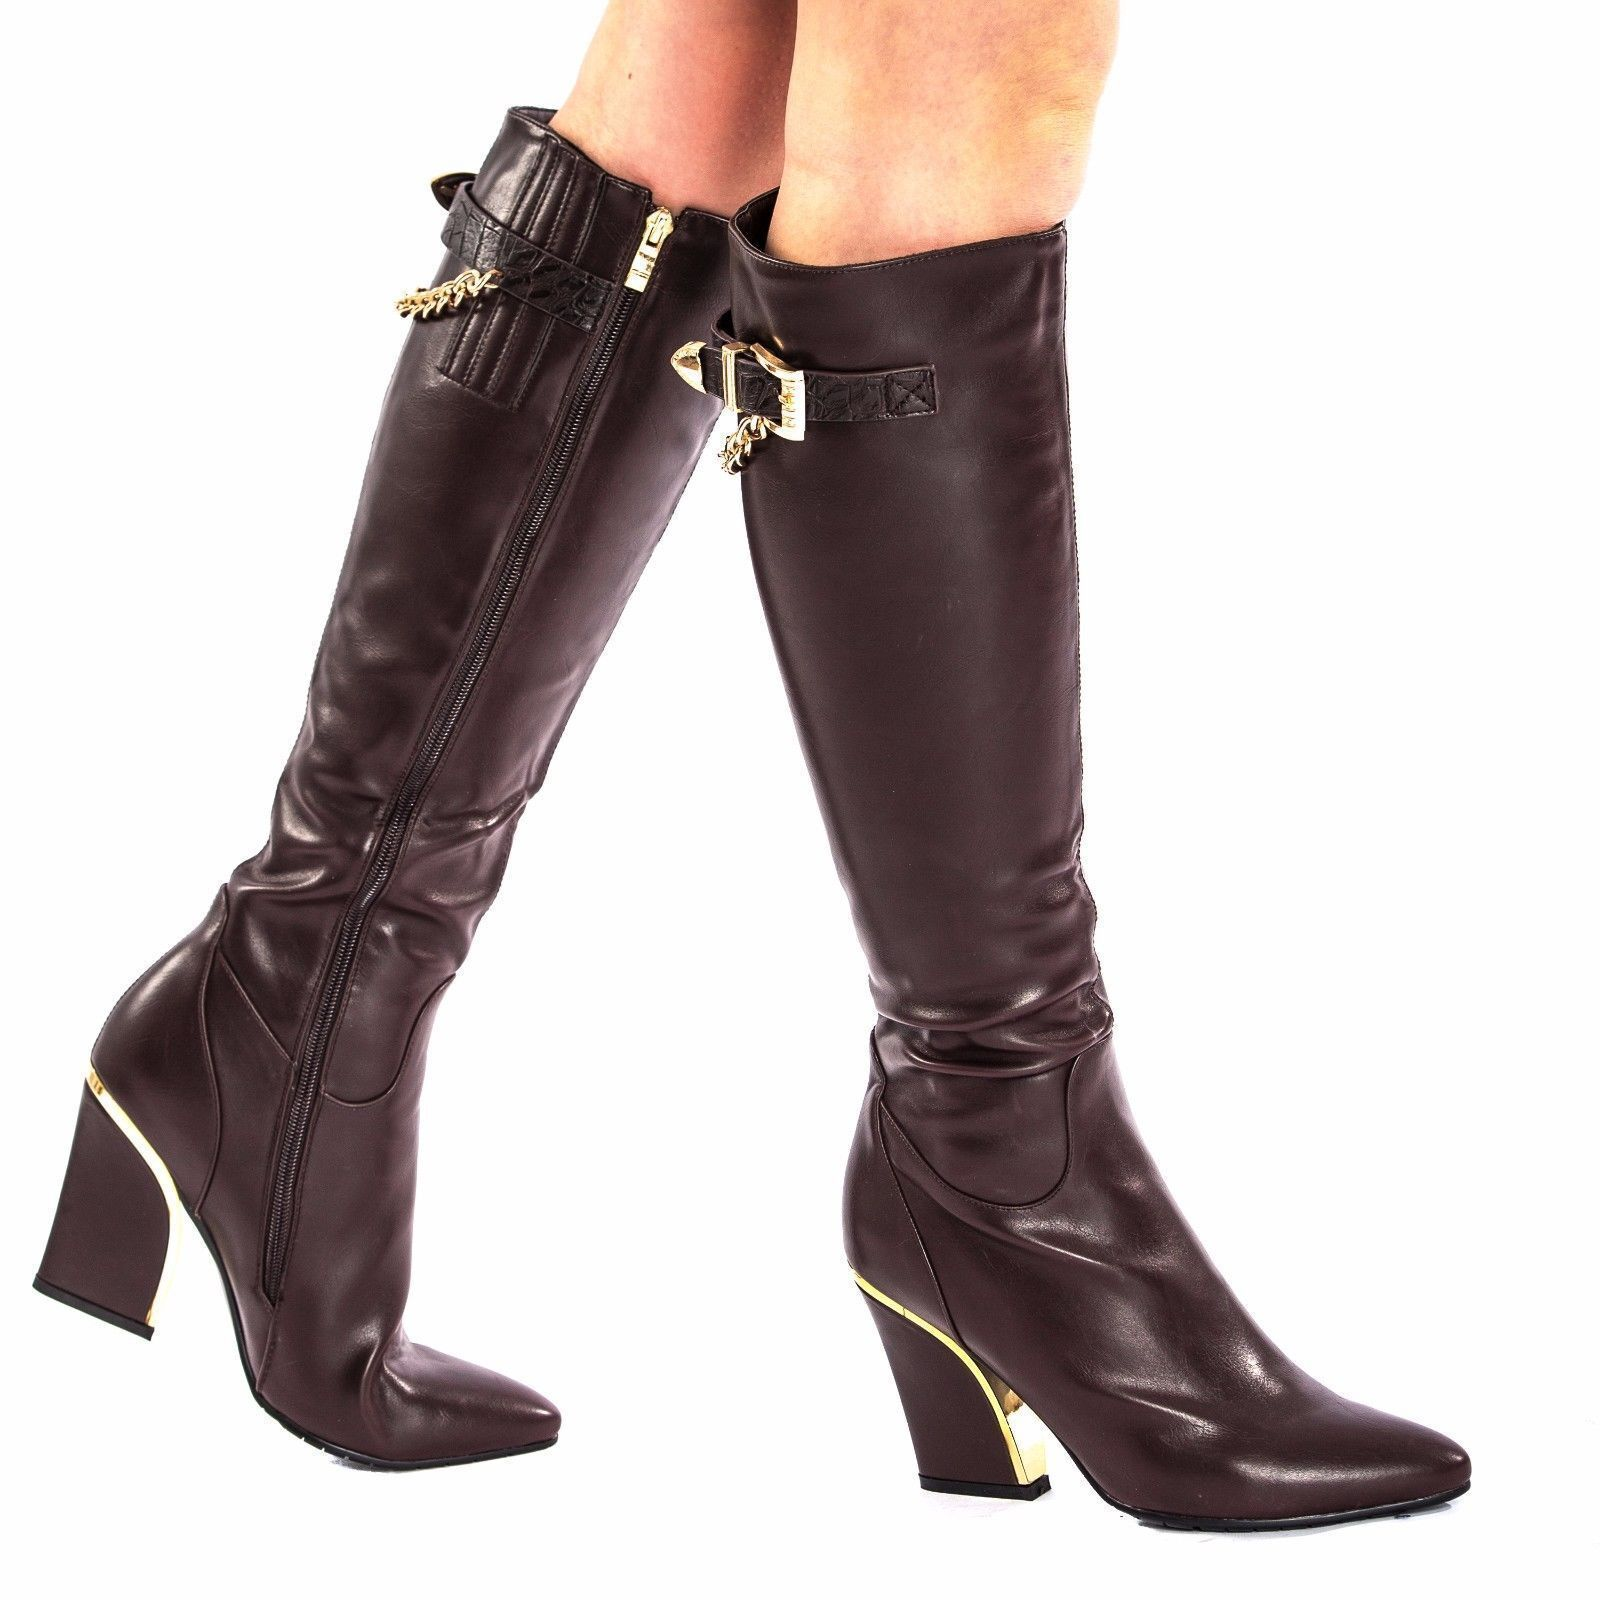 Womens Ladies Pu Leather Style gold Chain Knee High Zip Winter Long Boots Size 6